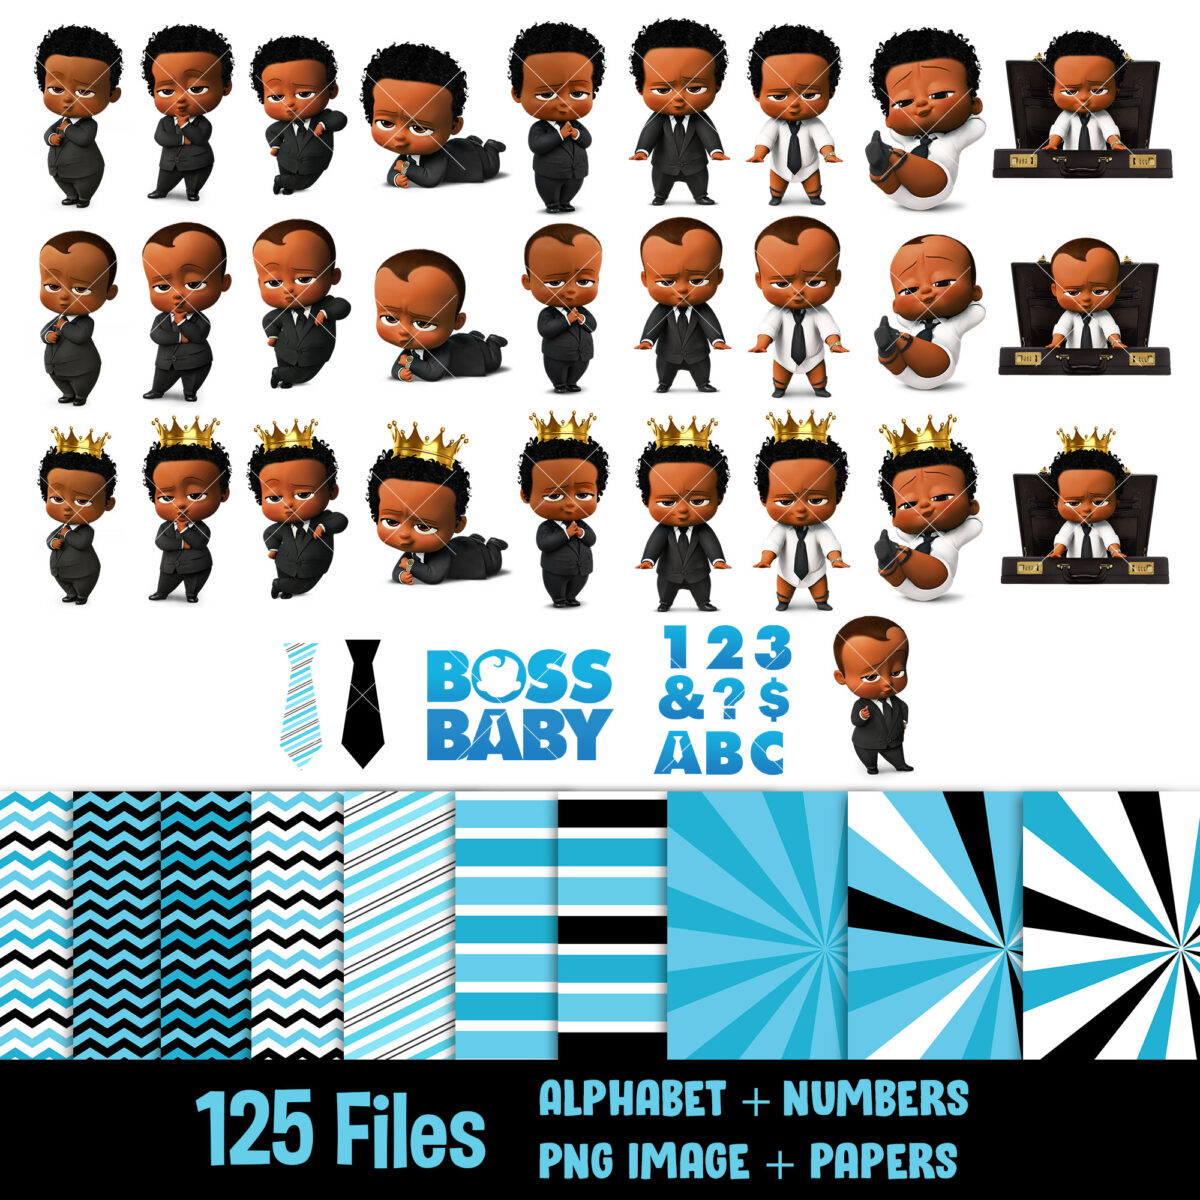 Afro boss baby clipart